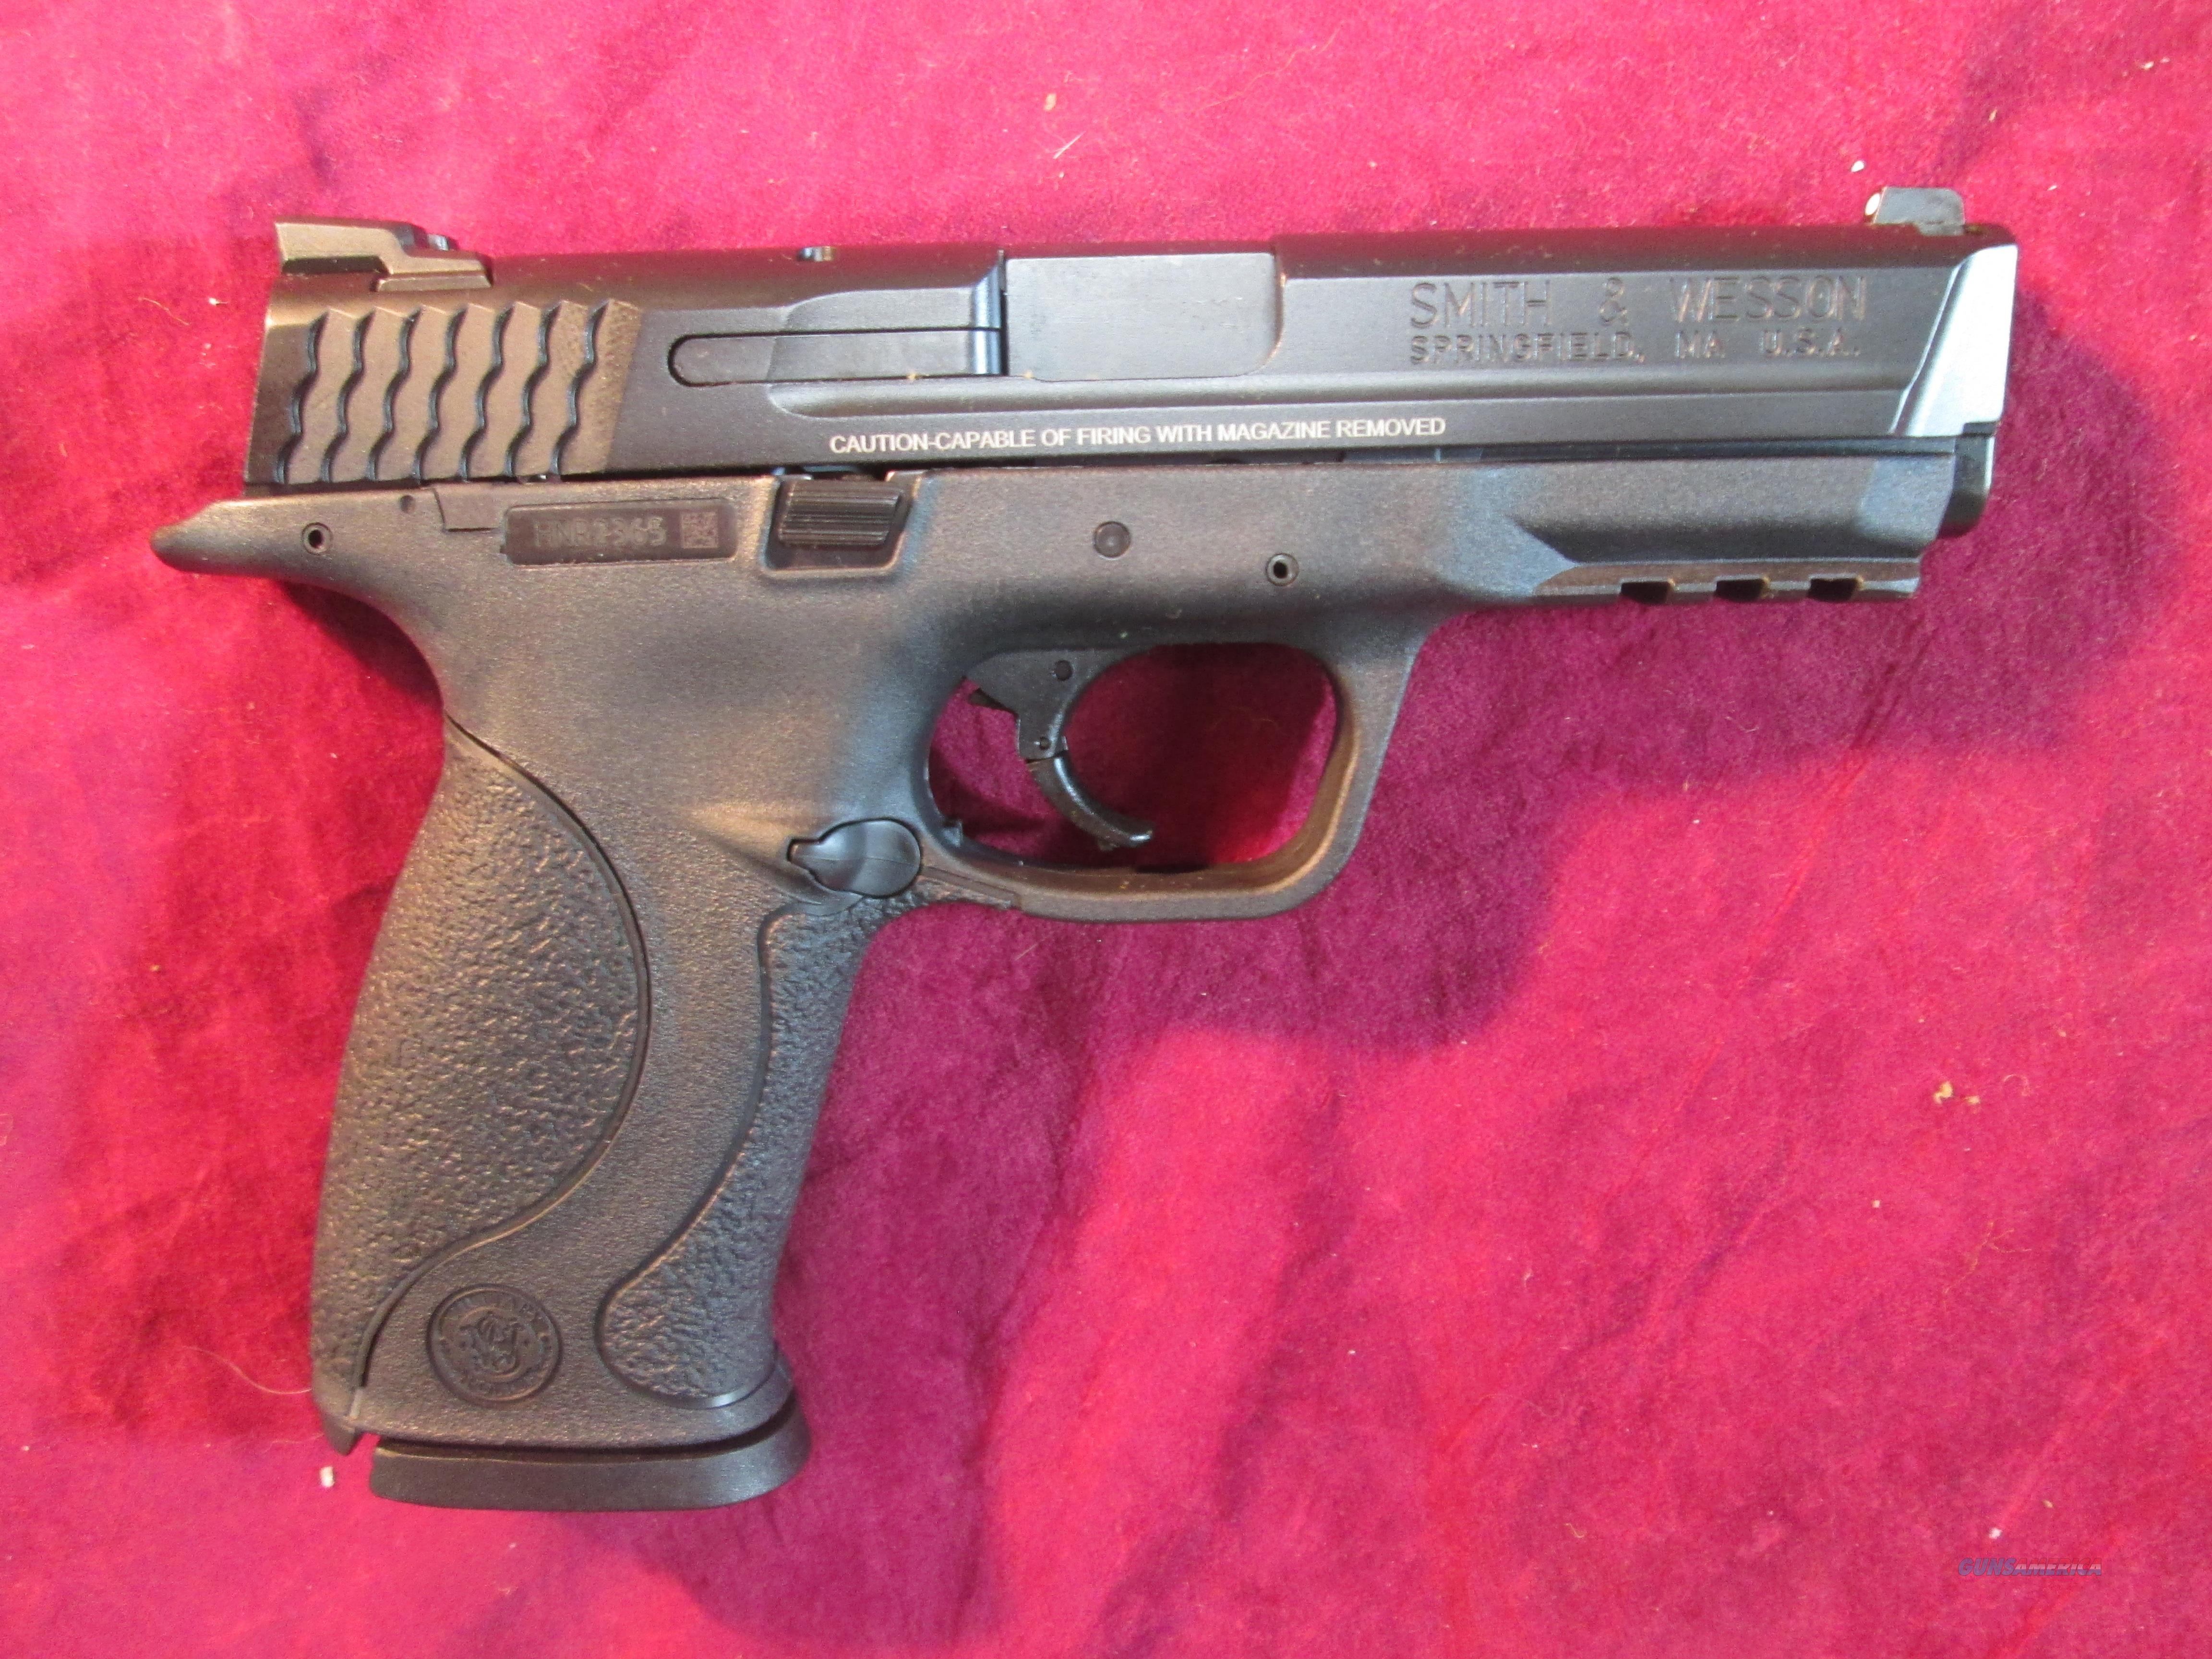 SMITH AND WESSON M&P 9 W/ EXTRA THREADED BARREL NEW (150922)   Guns > Pistols > Smith & Wesson Pistols - Autos > Polymer Frame